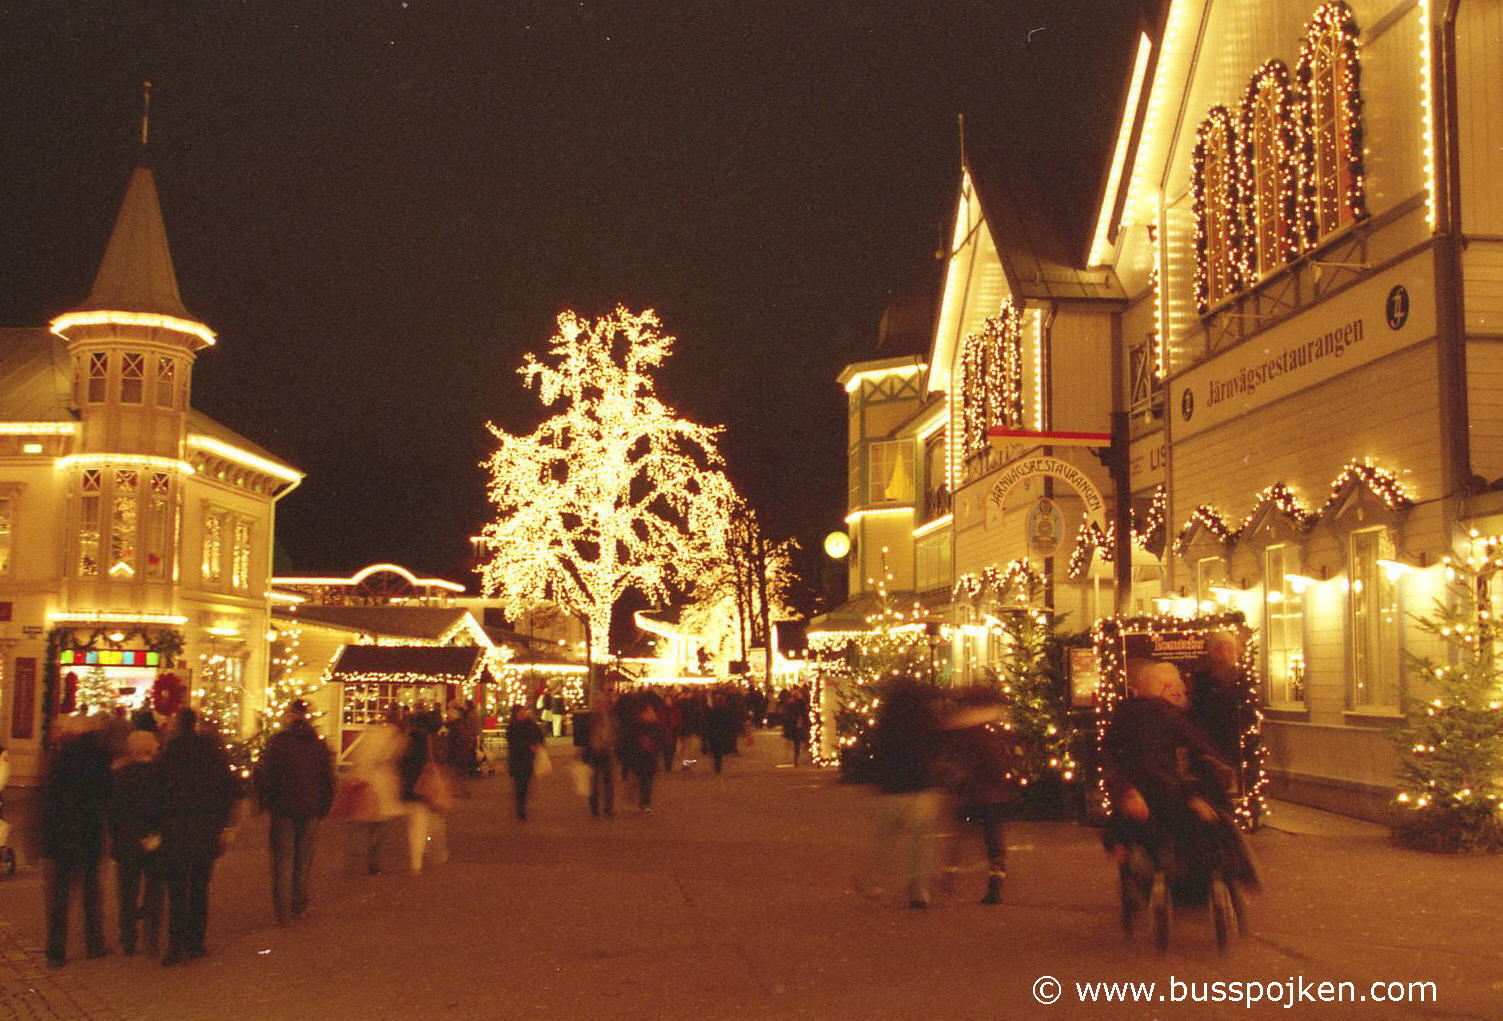 Jul på Liseberg in December 2008.